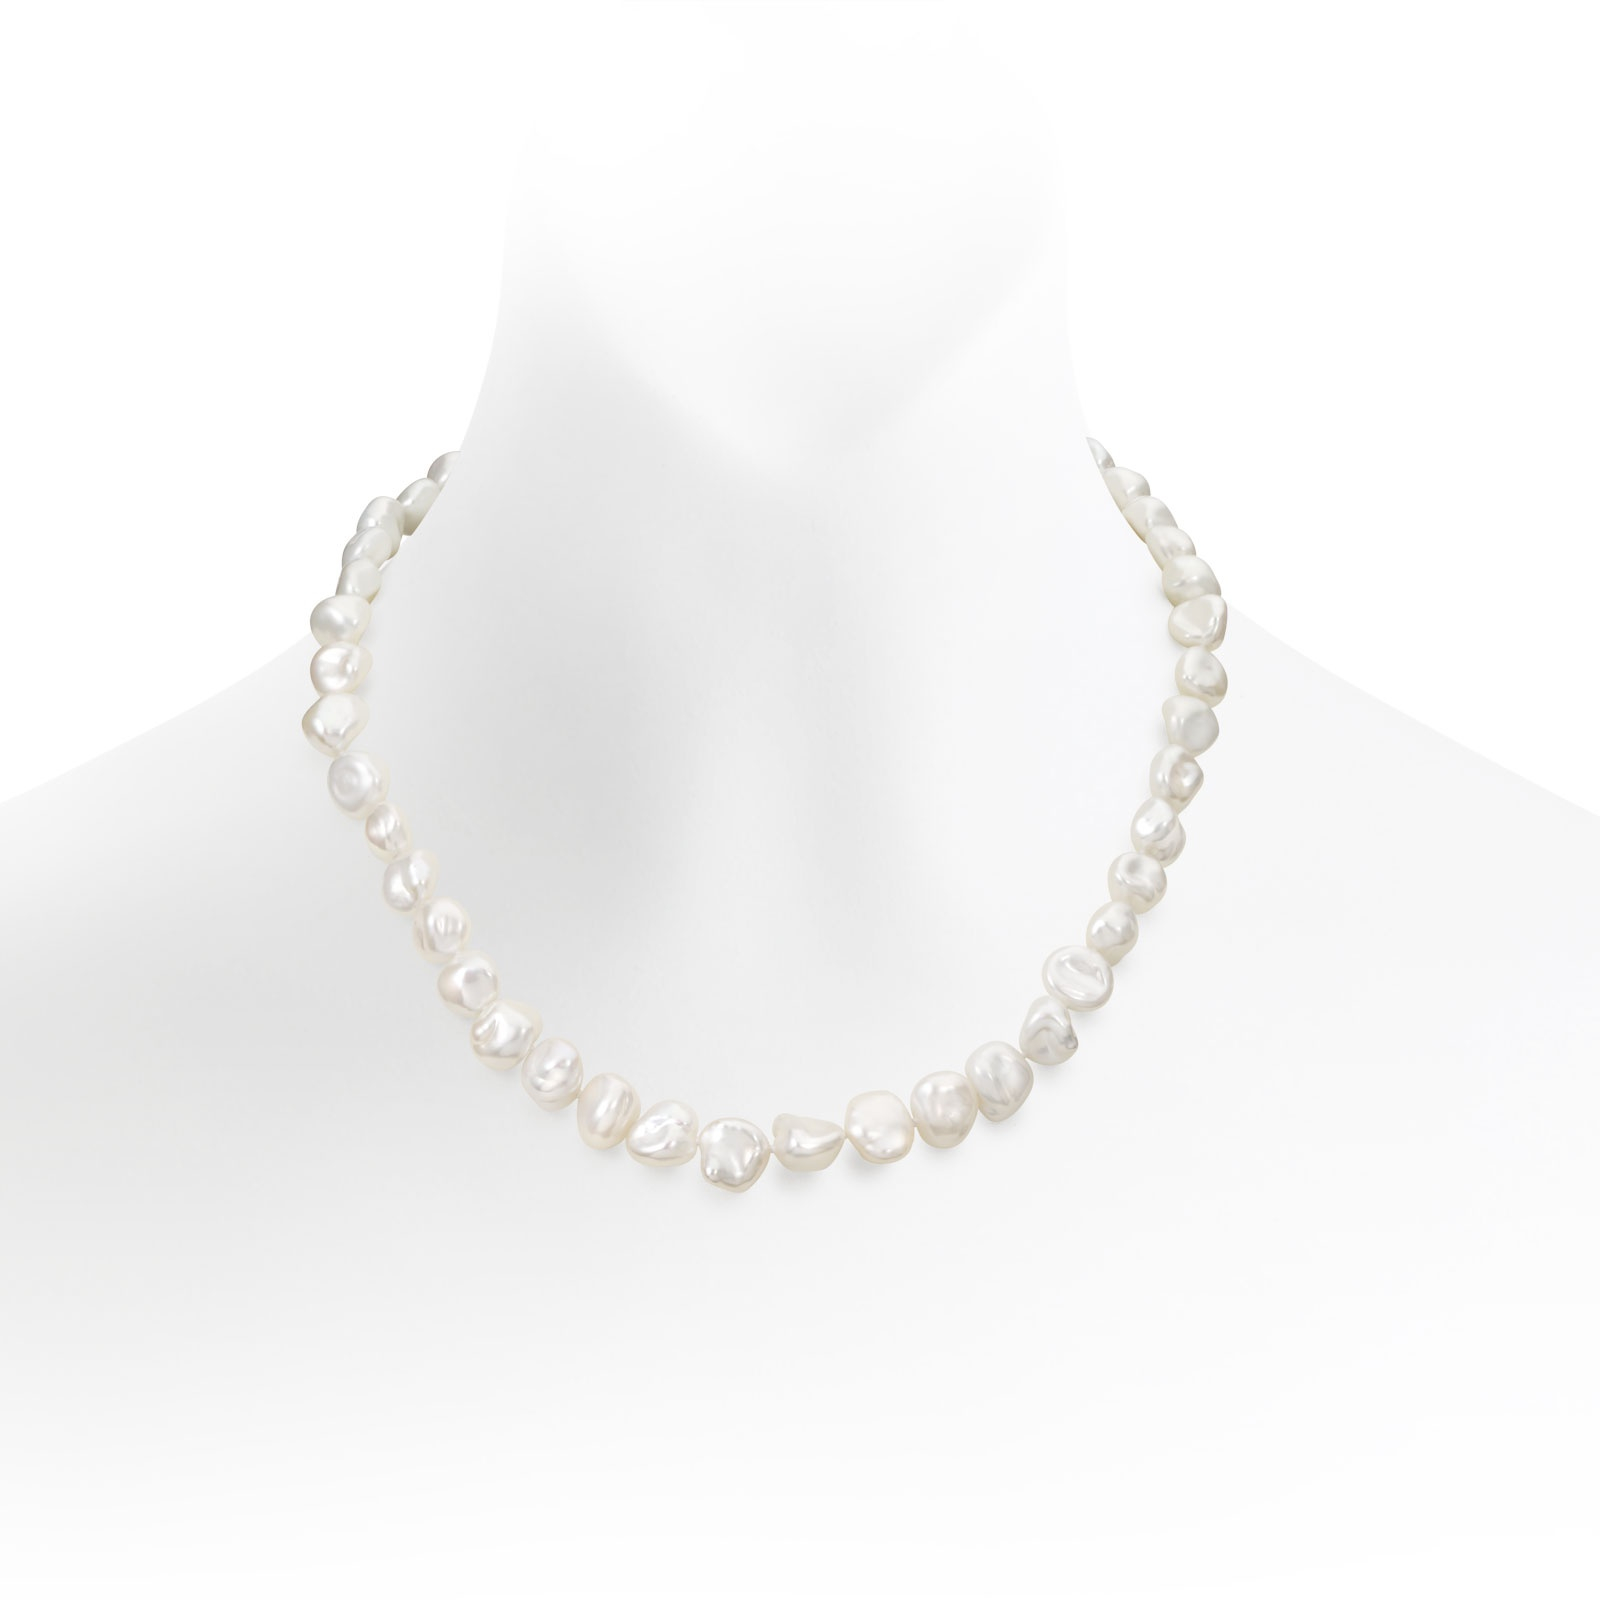 White Keshi Freshwater Pearl Necklace with Sterling Silver-FNWKSS0106-1